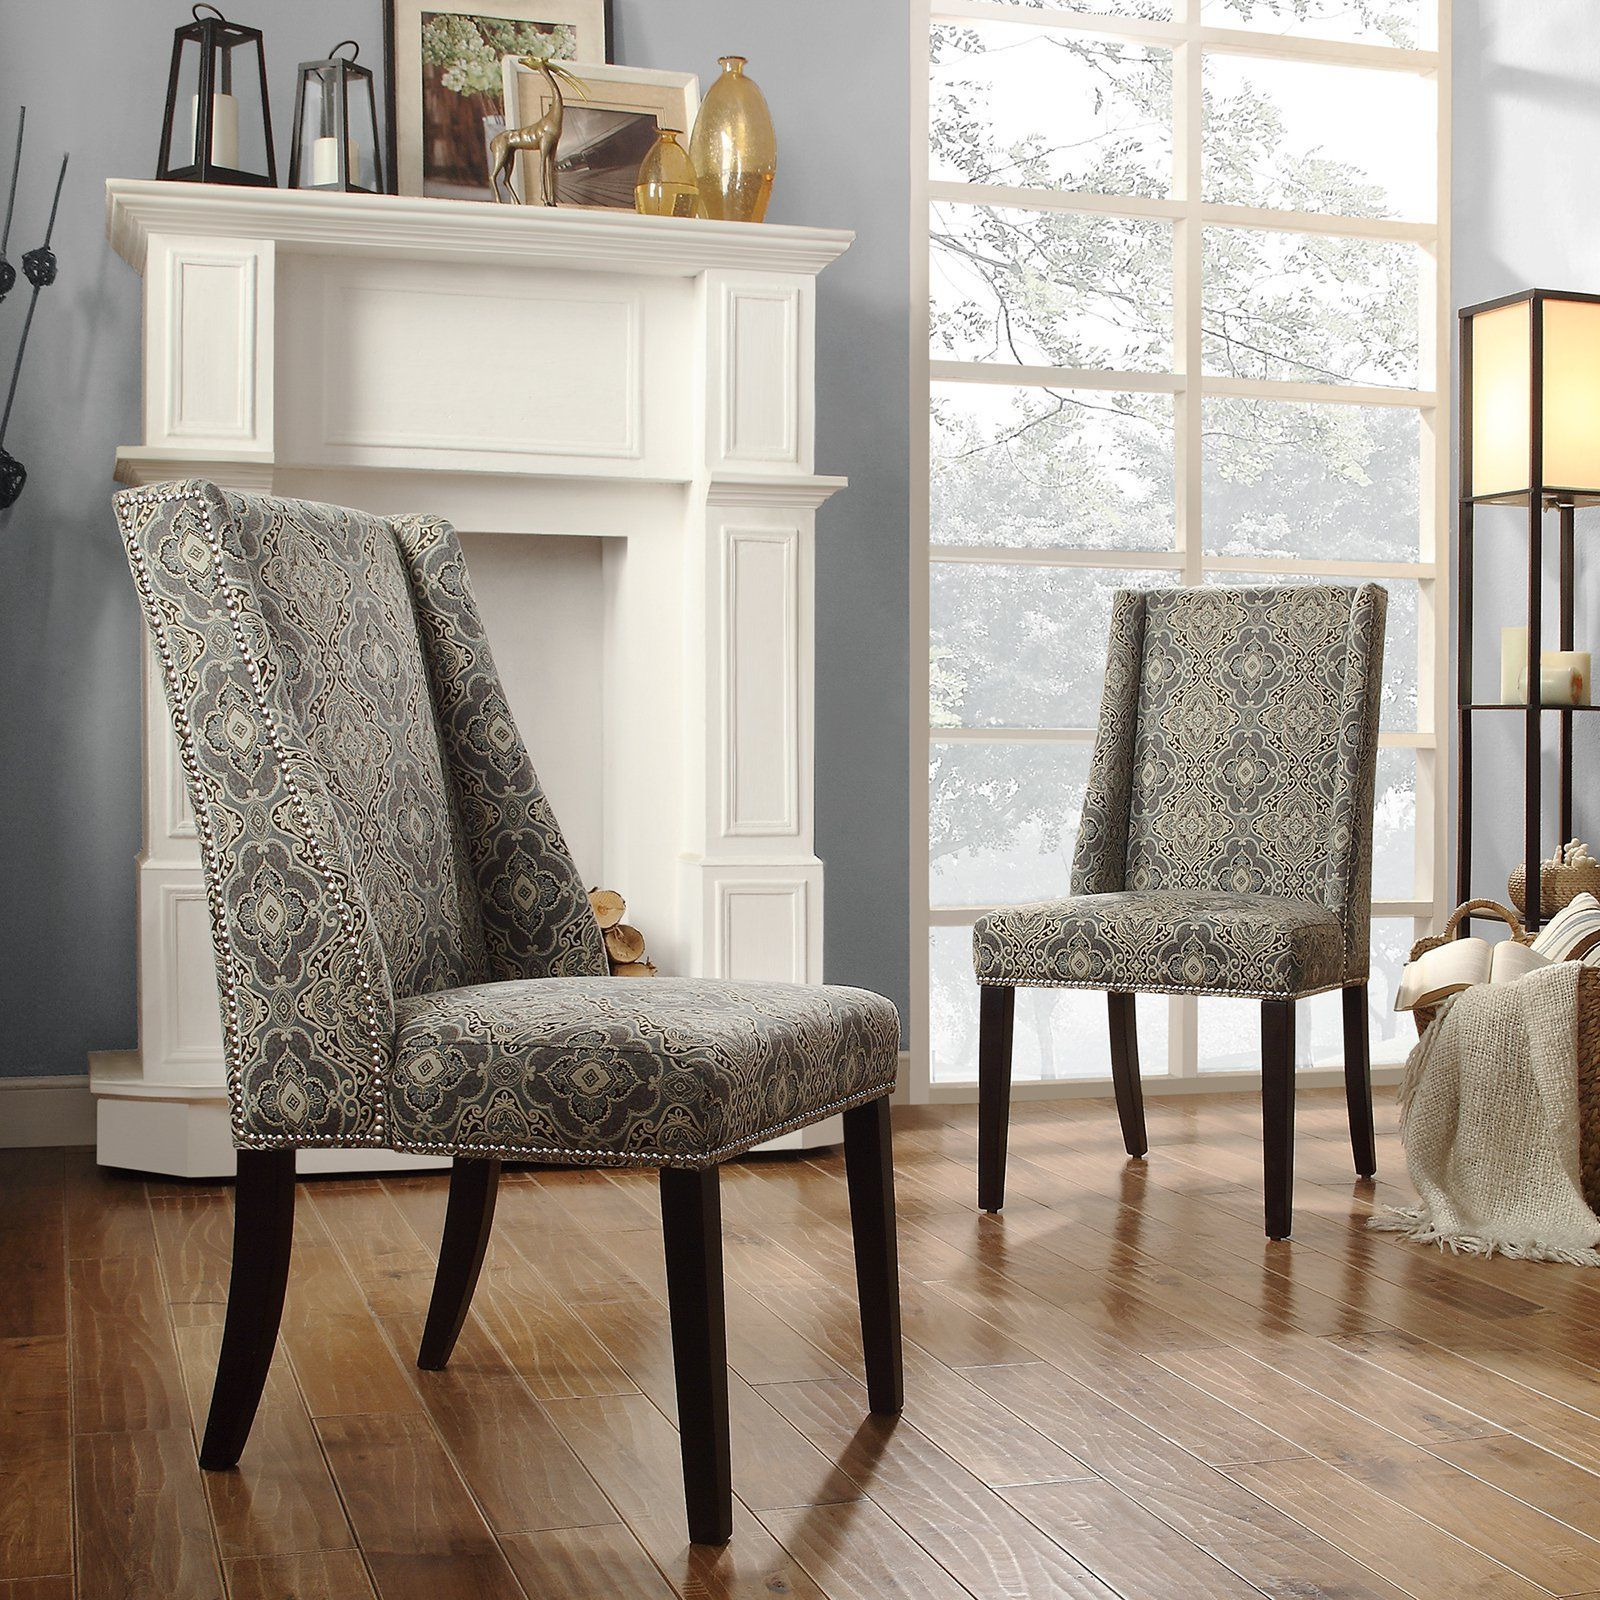 Best Chelsea Lane Blue Print Fabric Wingback With Nailhead 400 x 300